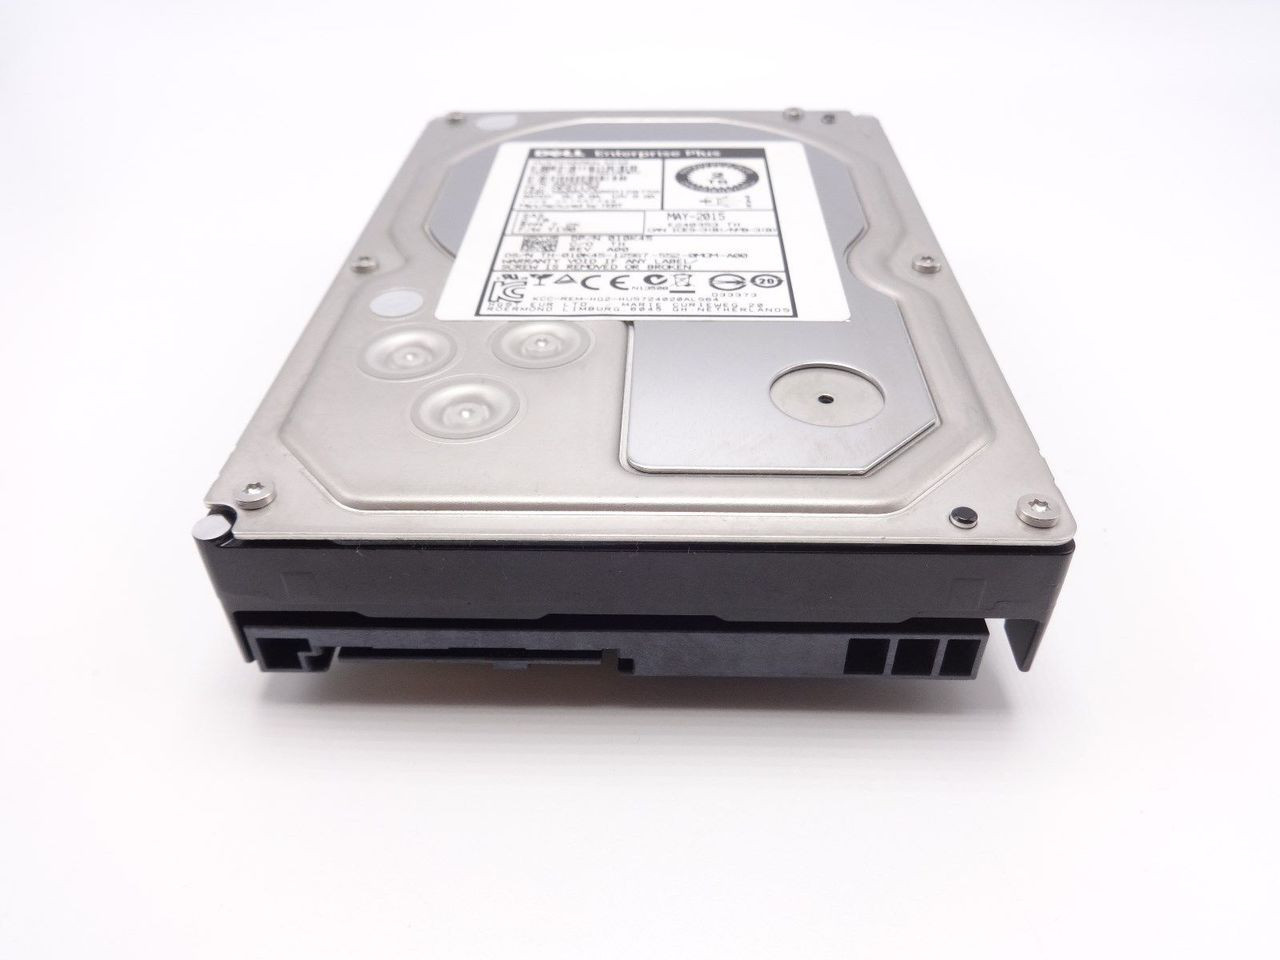 Dell 10K45 2TB NL SAS 7200RPM 3.5 hard drive